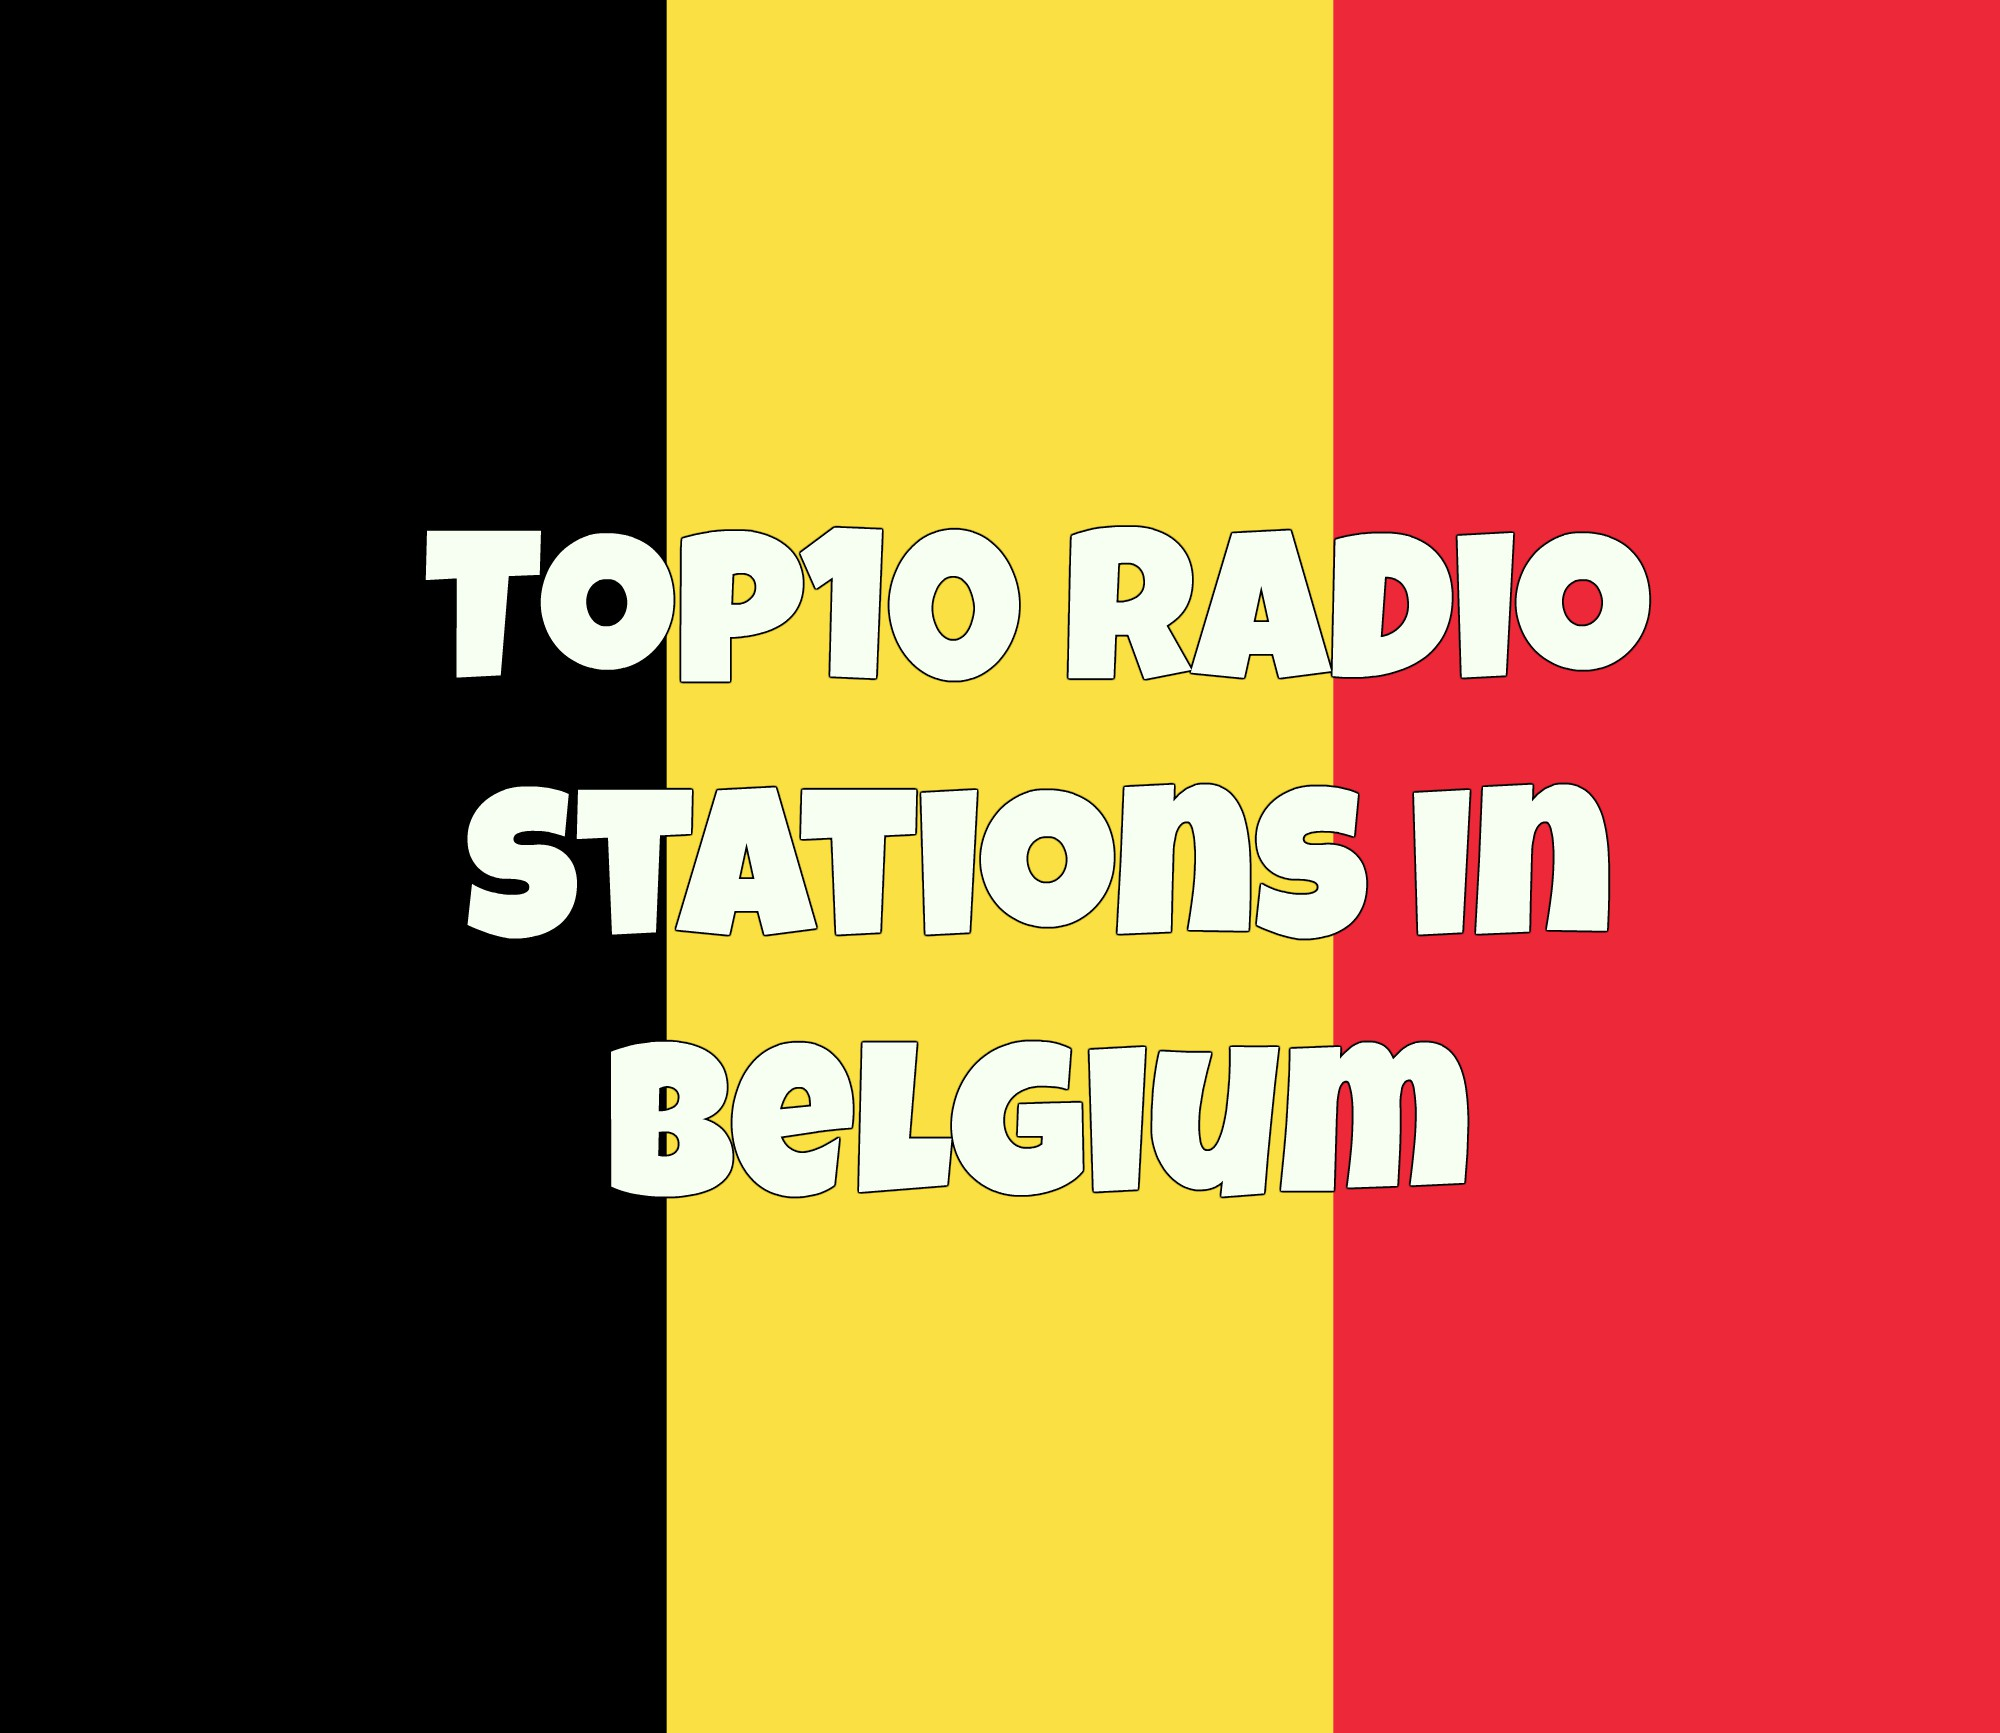 Top10 radio stations in Belgium online